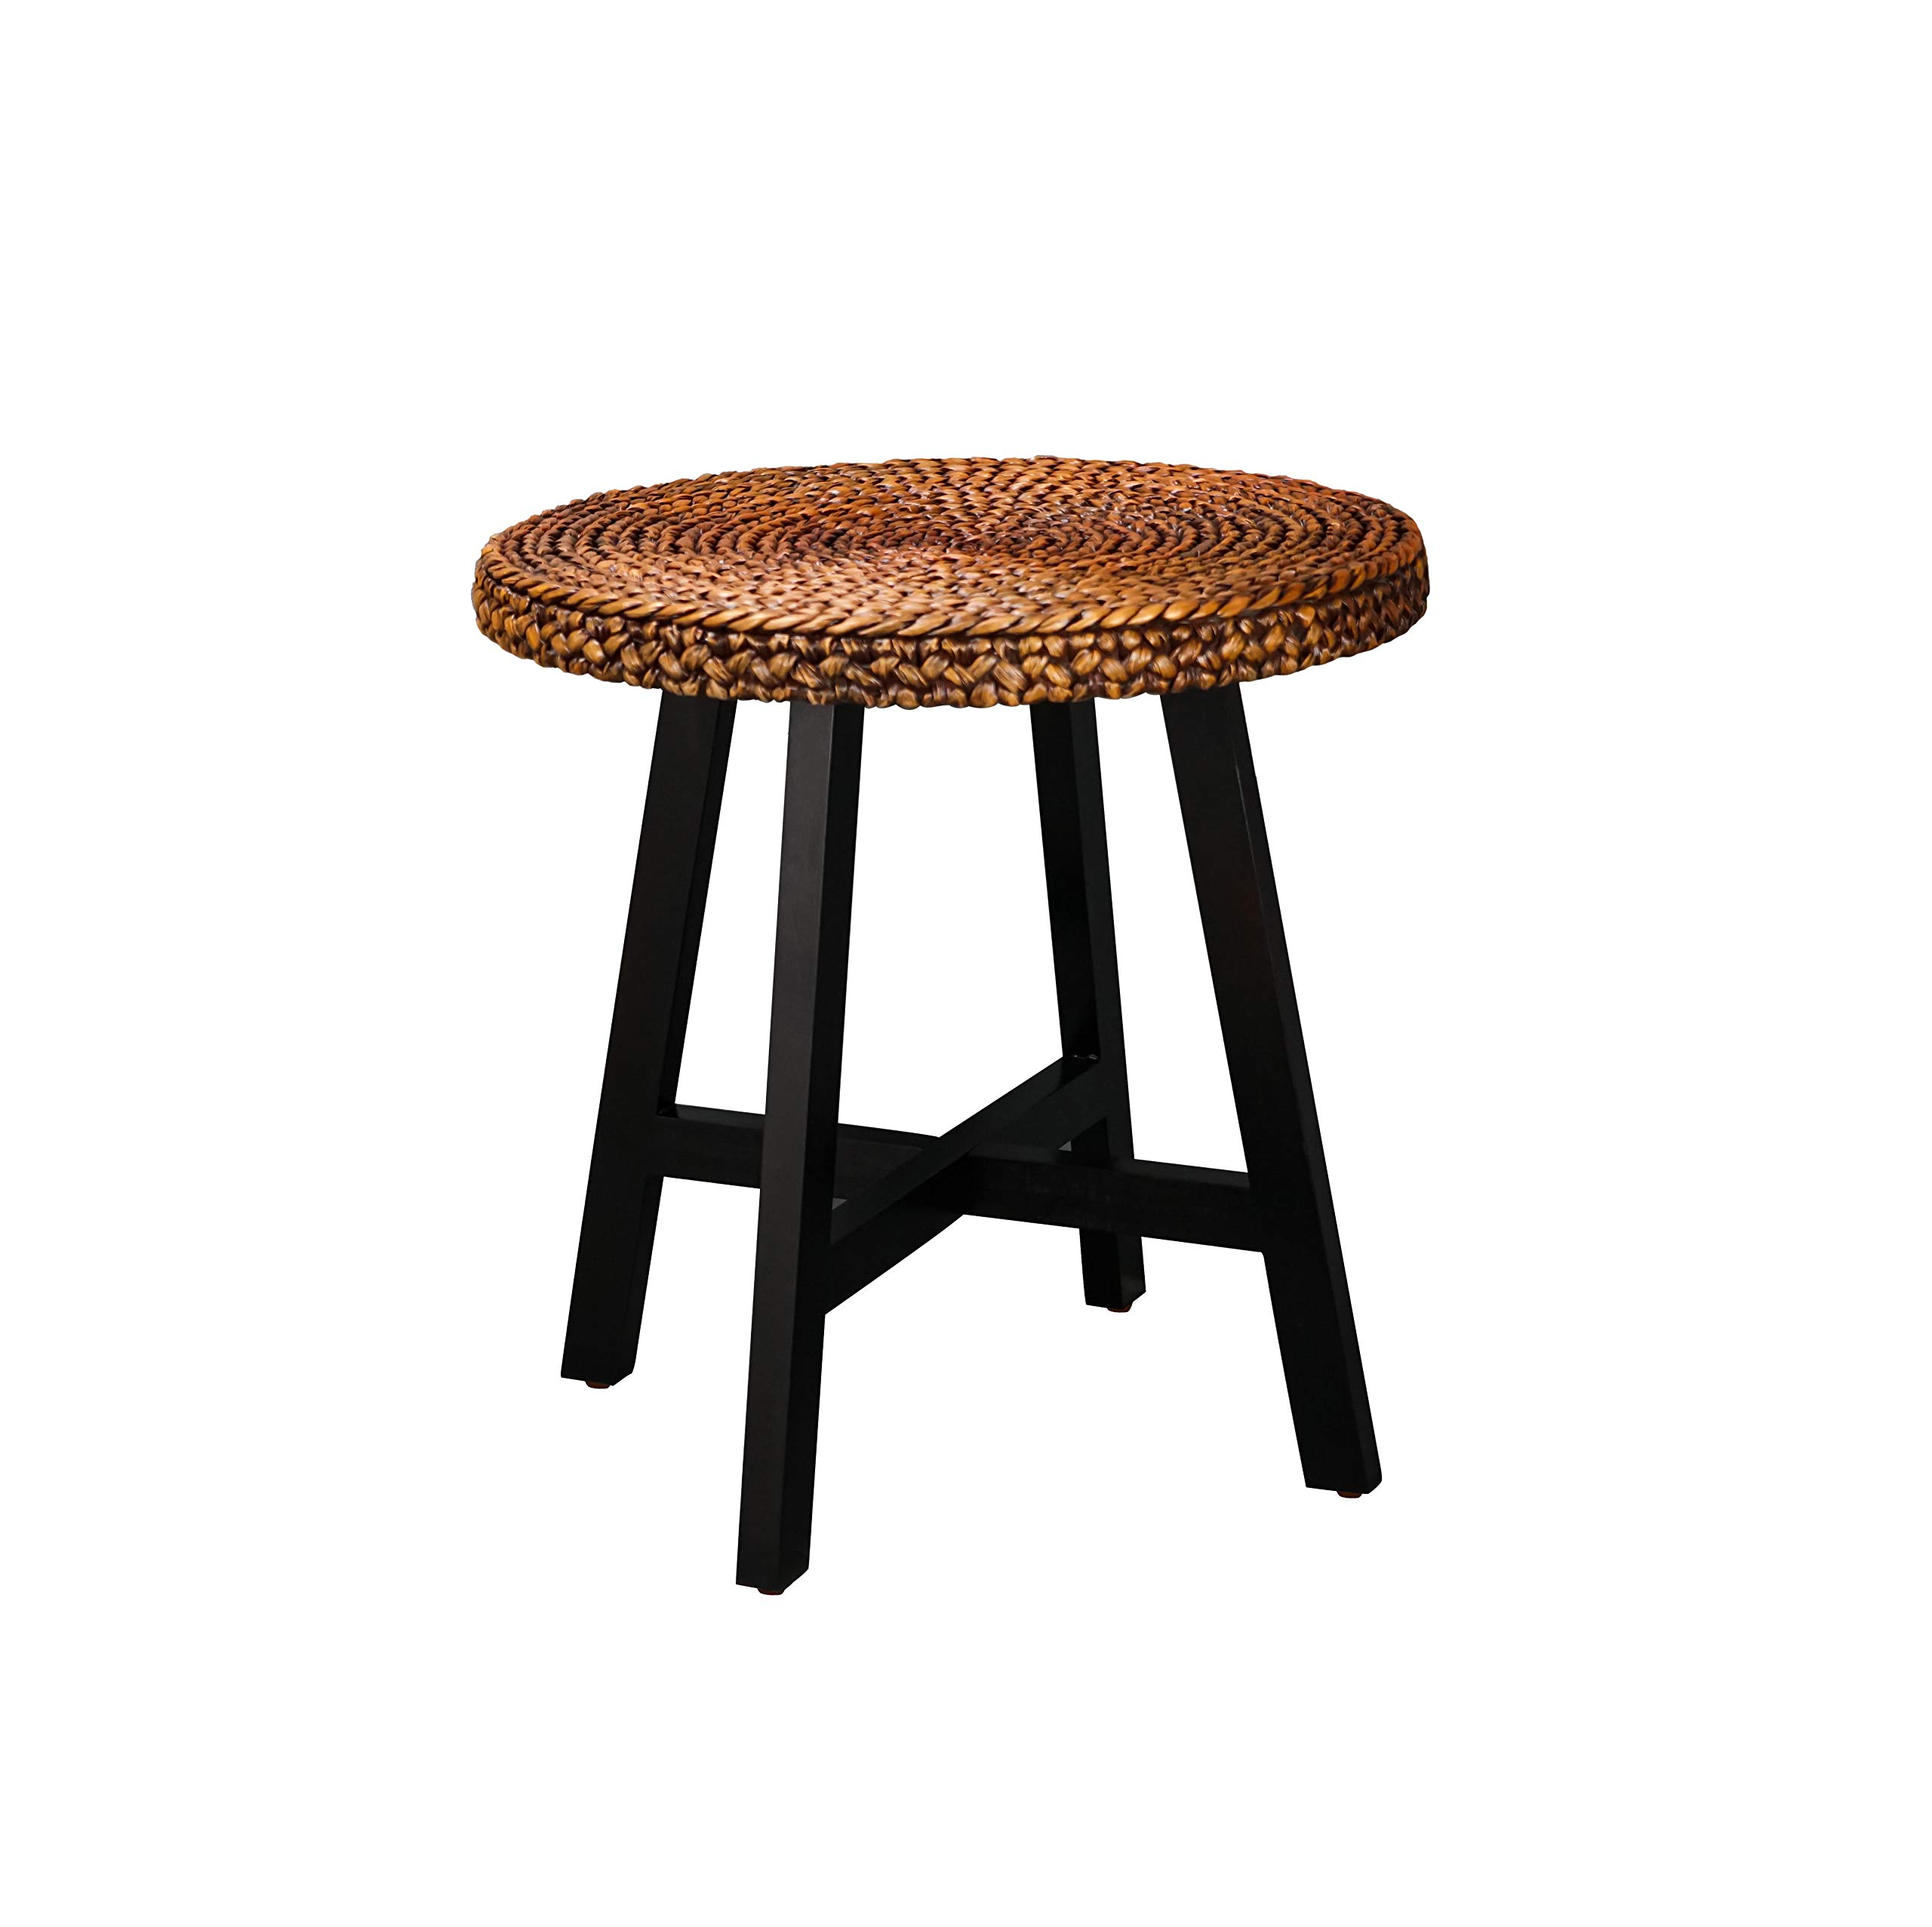 RANDEFURN Seagrass Side Table, Round Accent End Table 19.5x19.5x20 inches with Handmade Pine Wood Lges for Living Room, Bedroom, Outdoor. Gold